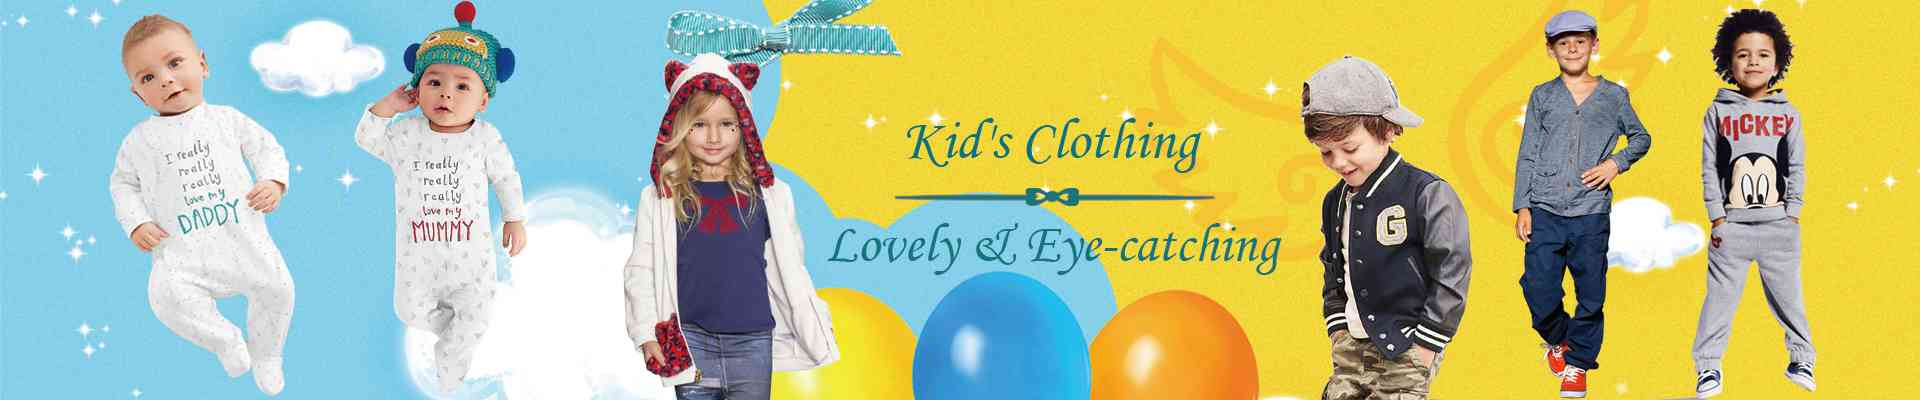 Kids and baby clothes introduction